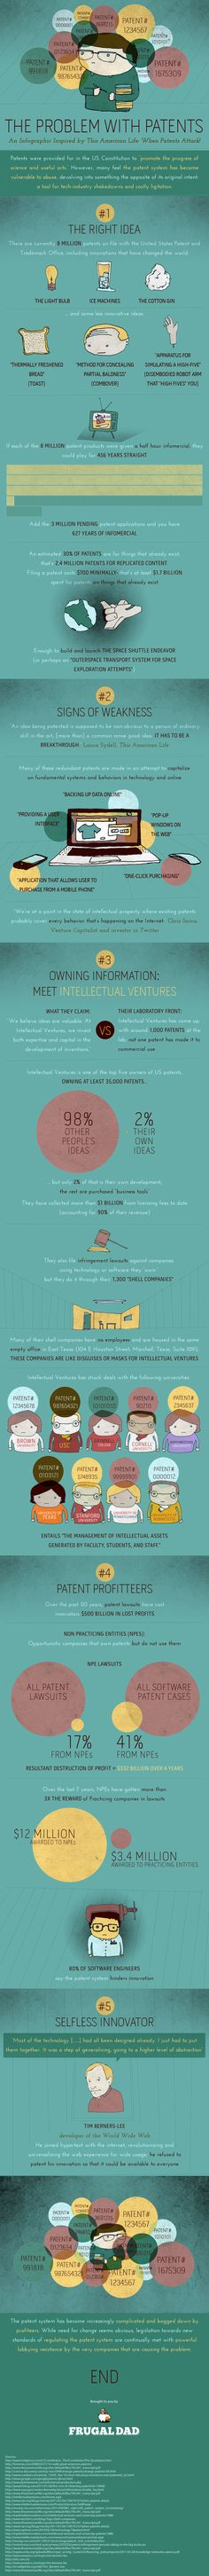 Very interesting infographic on the problems with patents (inspired by This American Life's feature on patents)